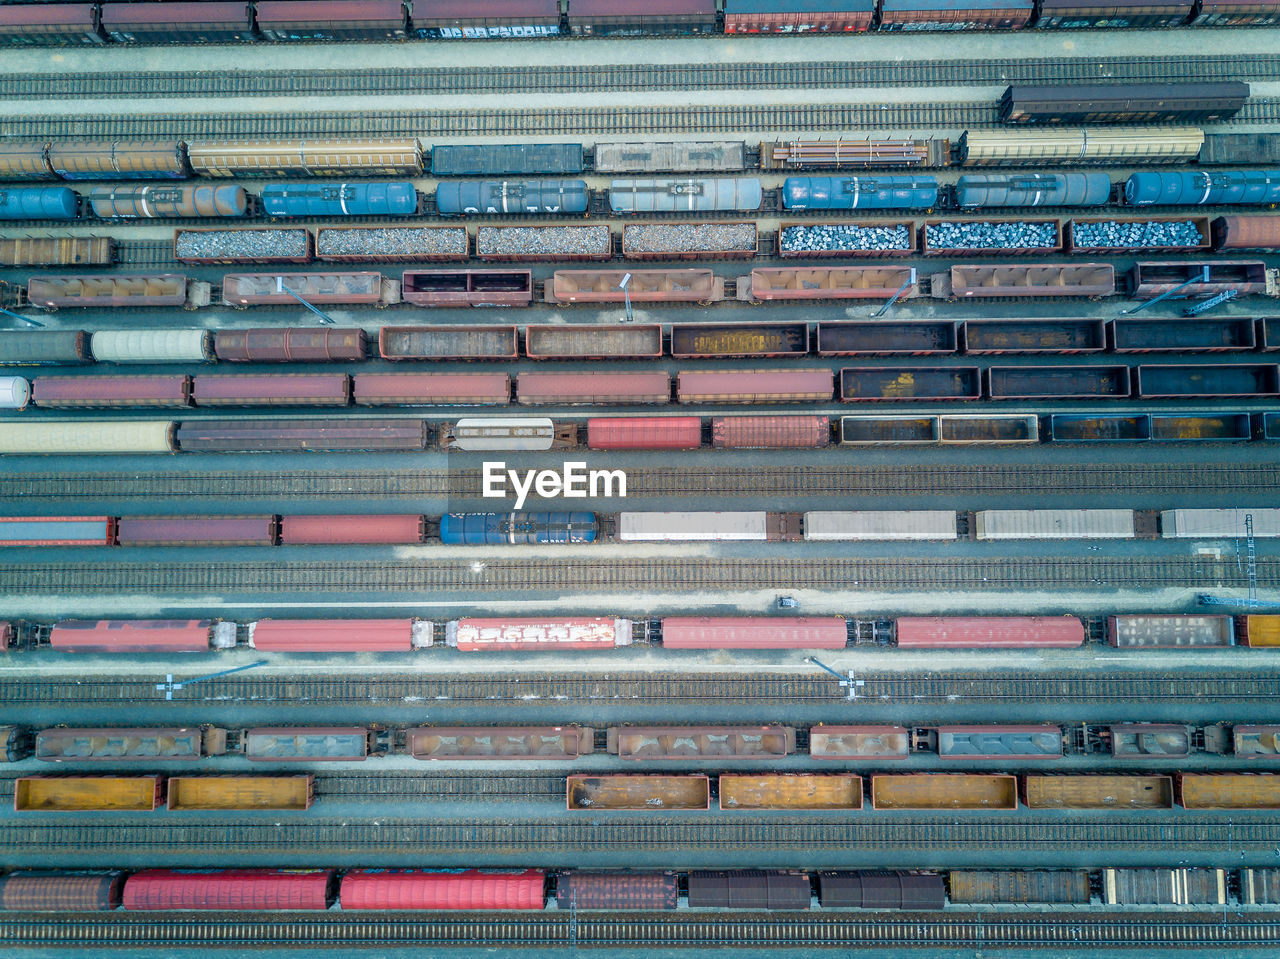 Aerial View Of Freight Train